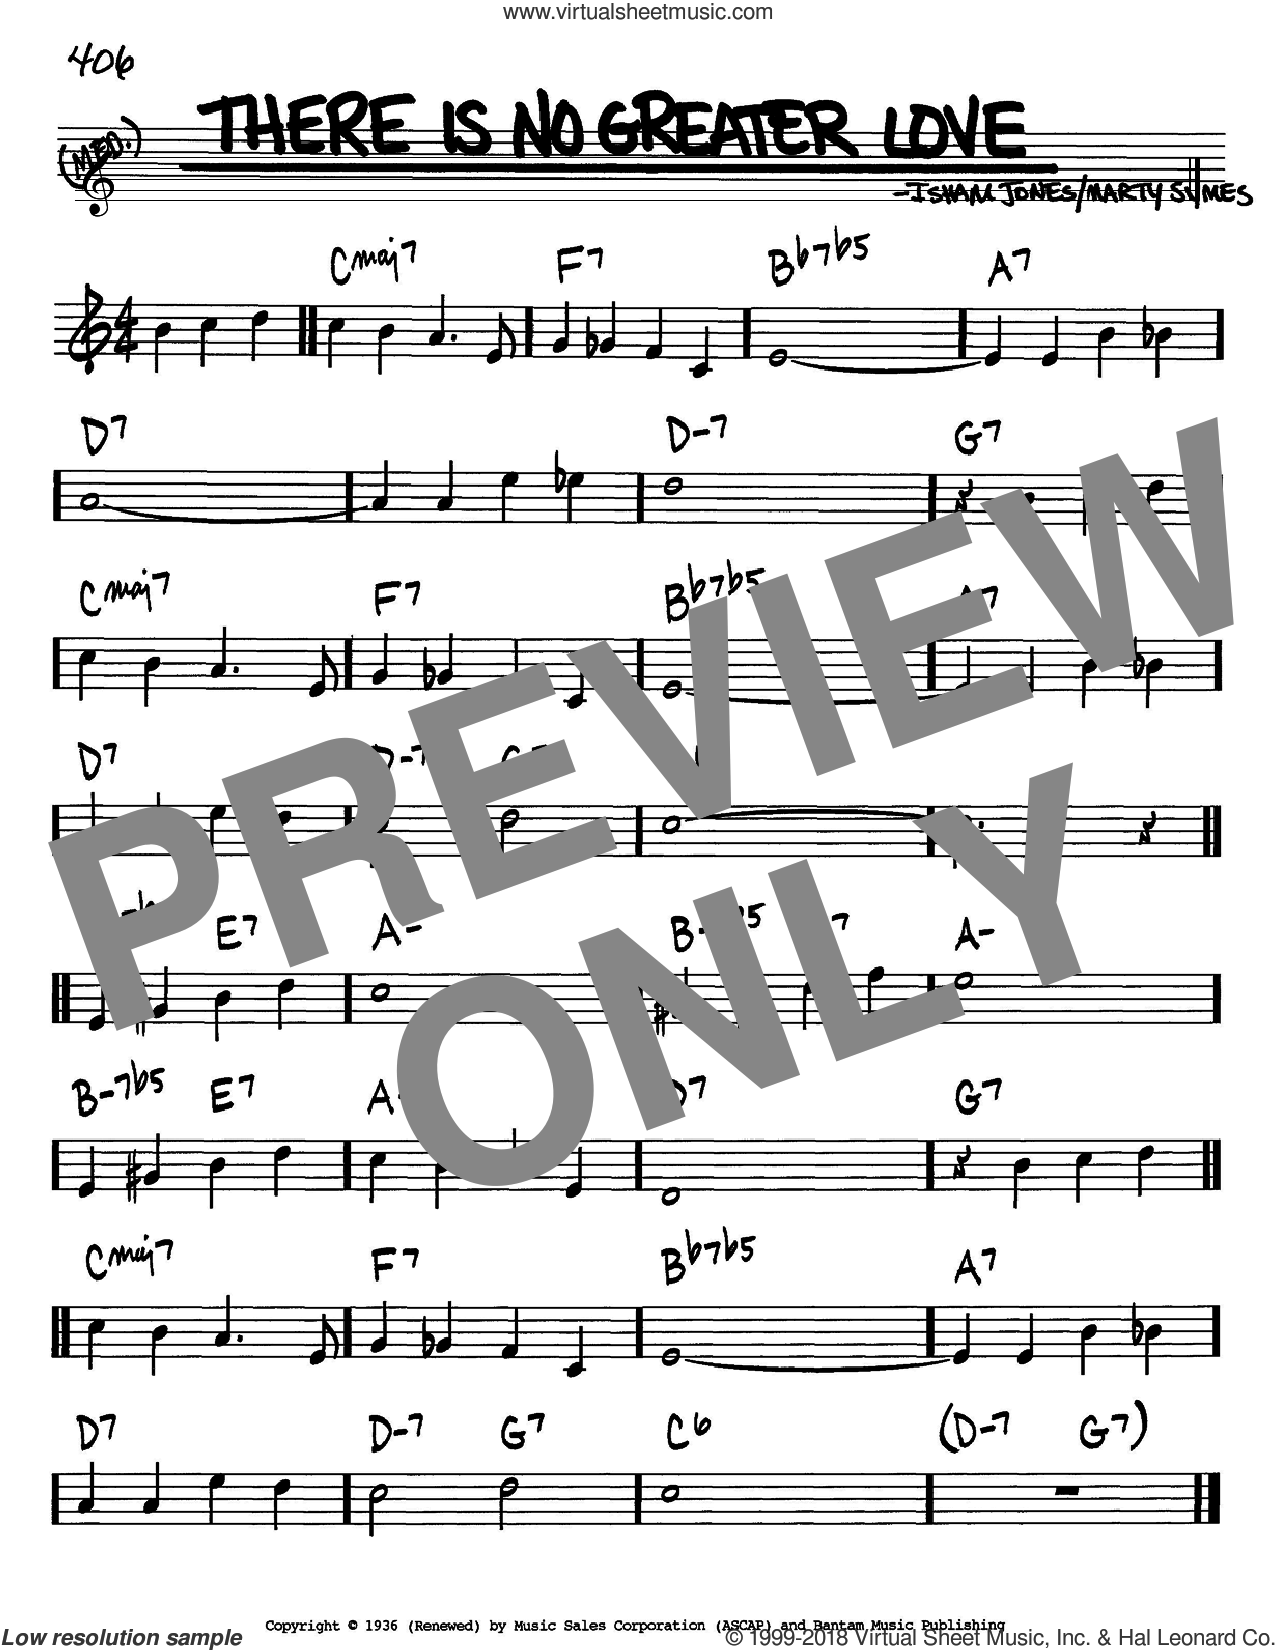 There Is No Greater Love sheet music for voice and other instruments (Bb) by Marty Symes